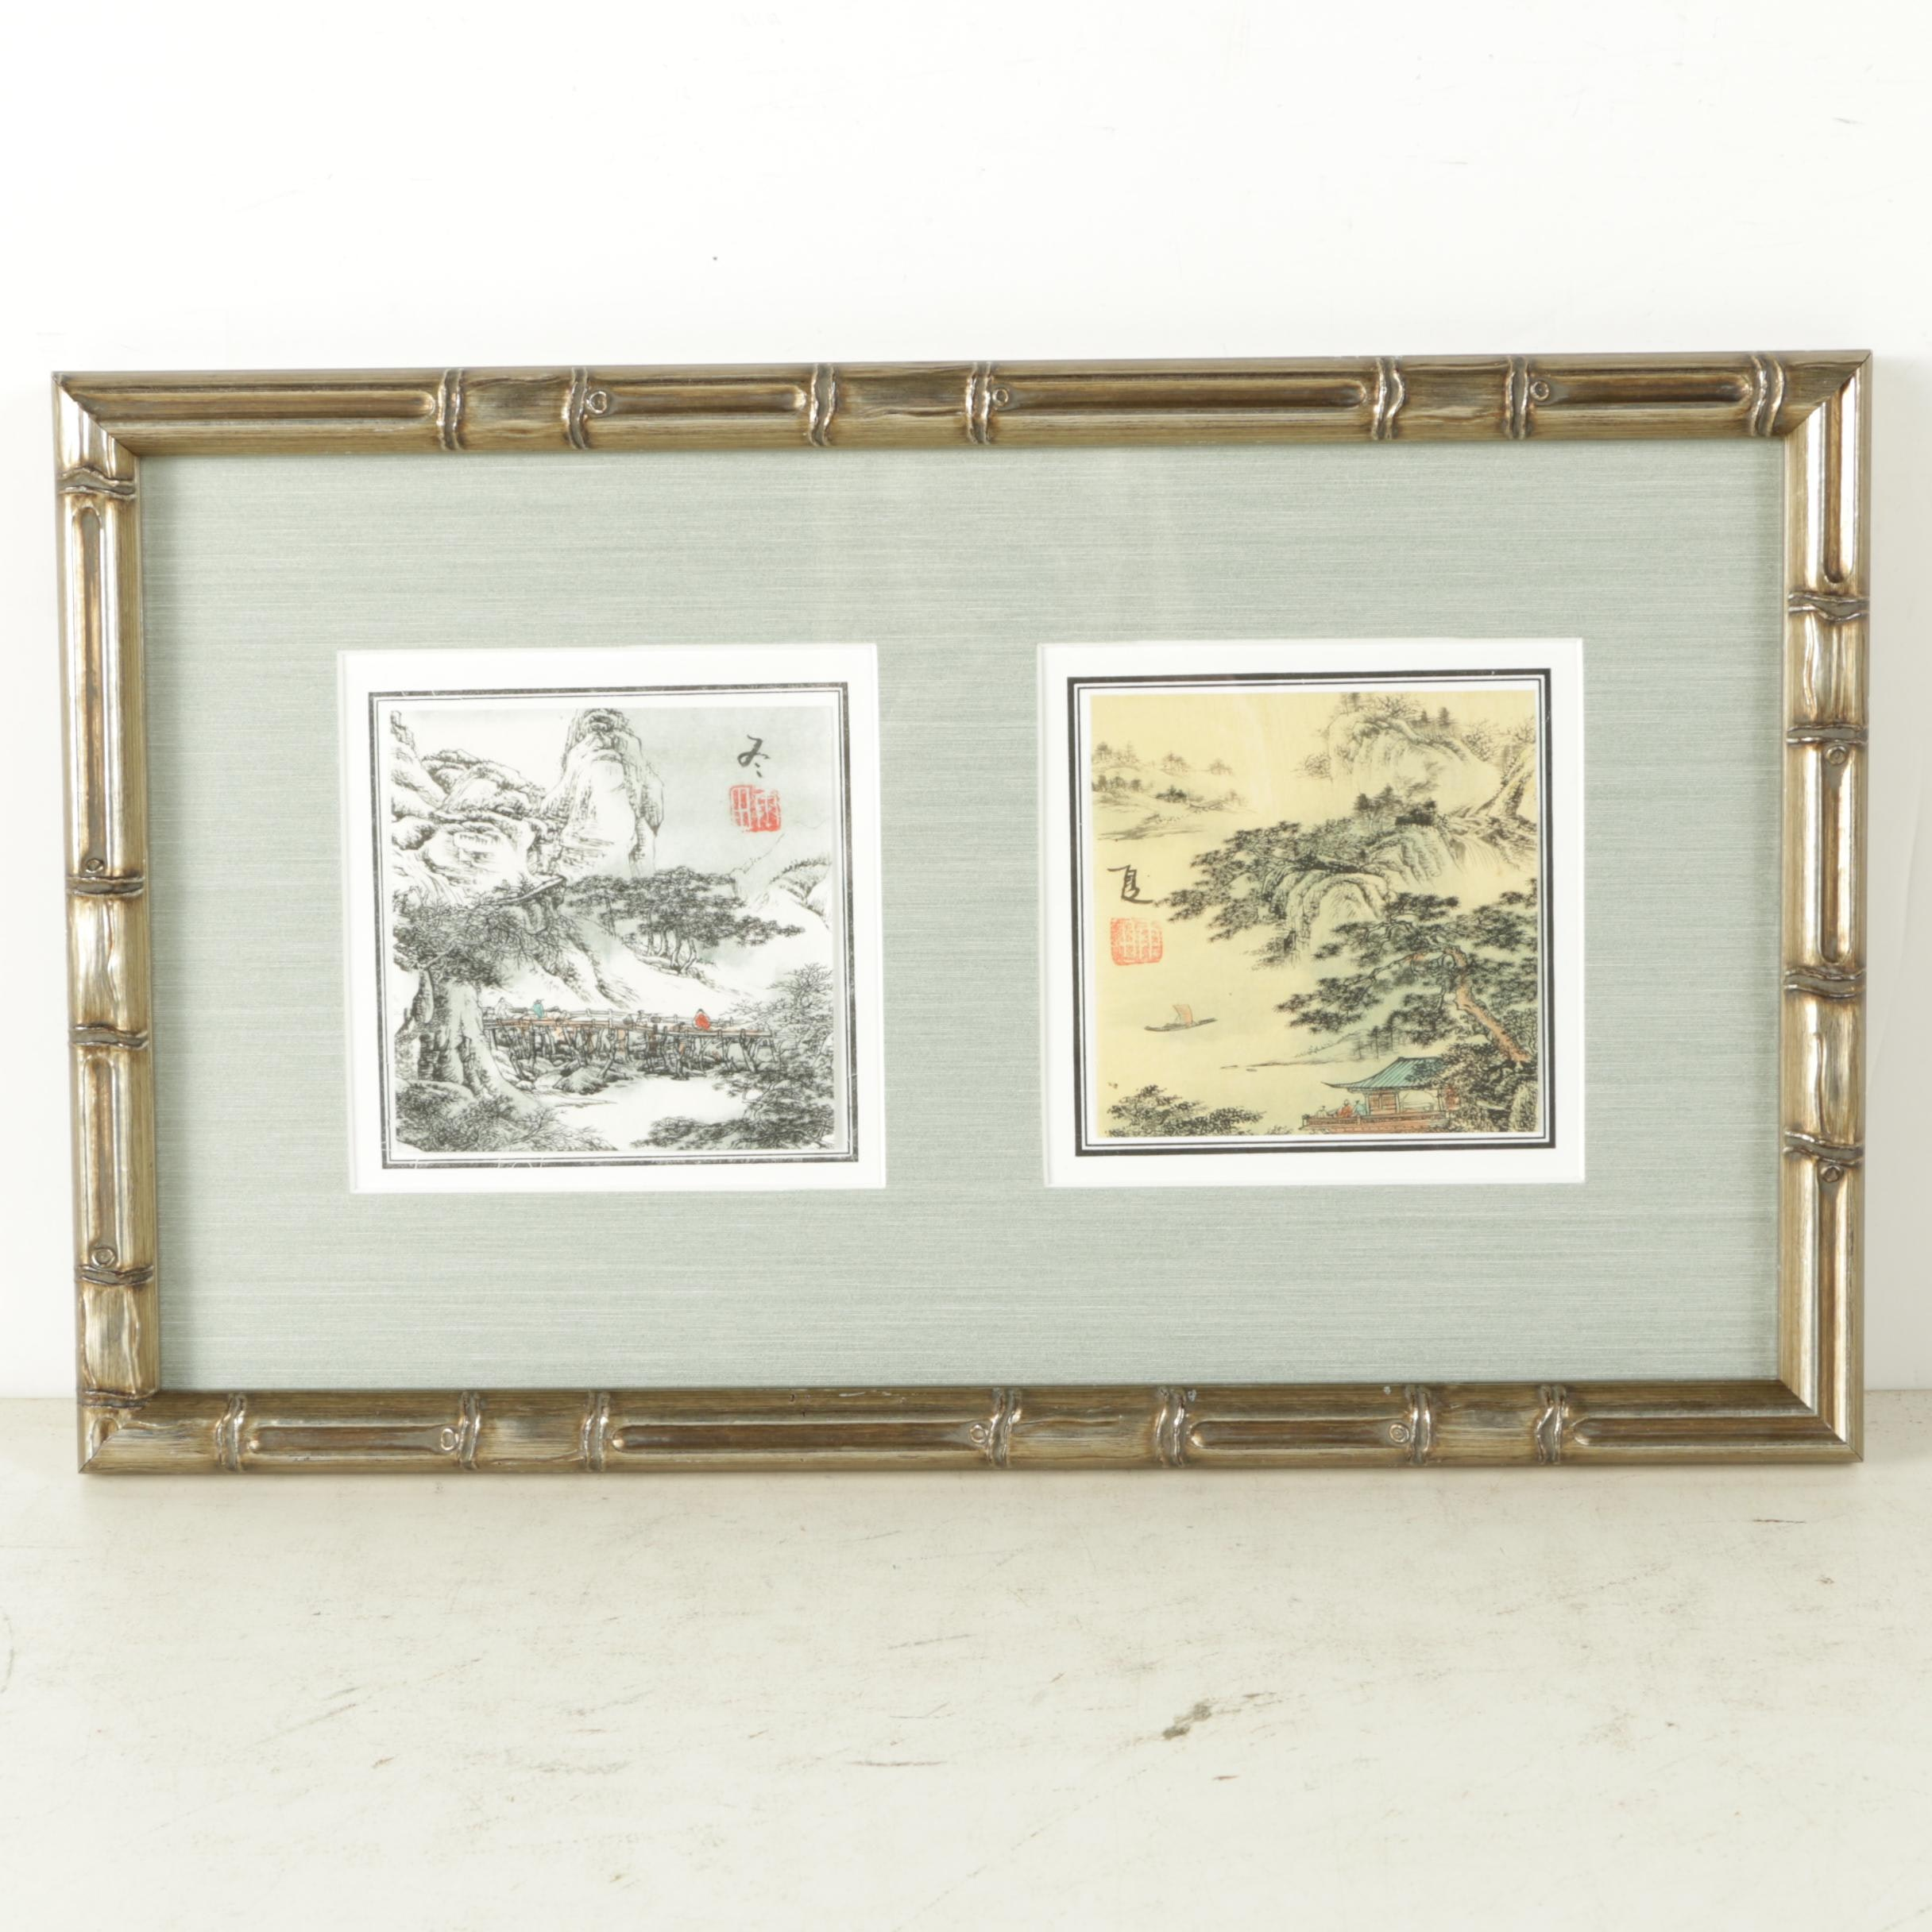 Hand-Colored Rotogravure Prints of East Asian Scenes